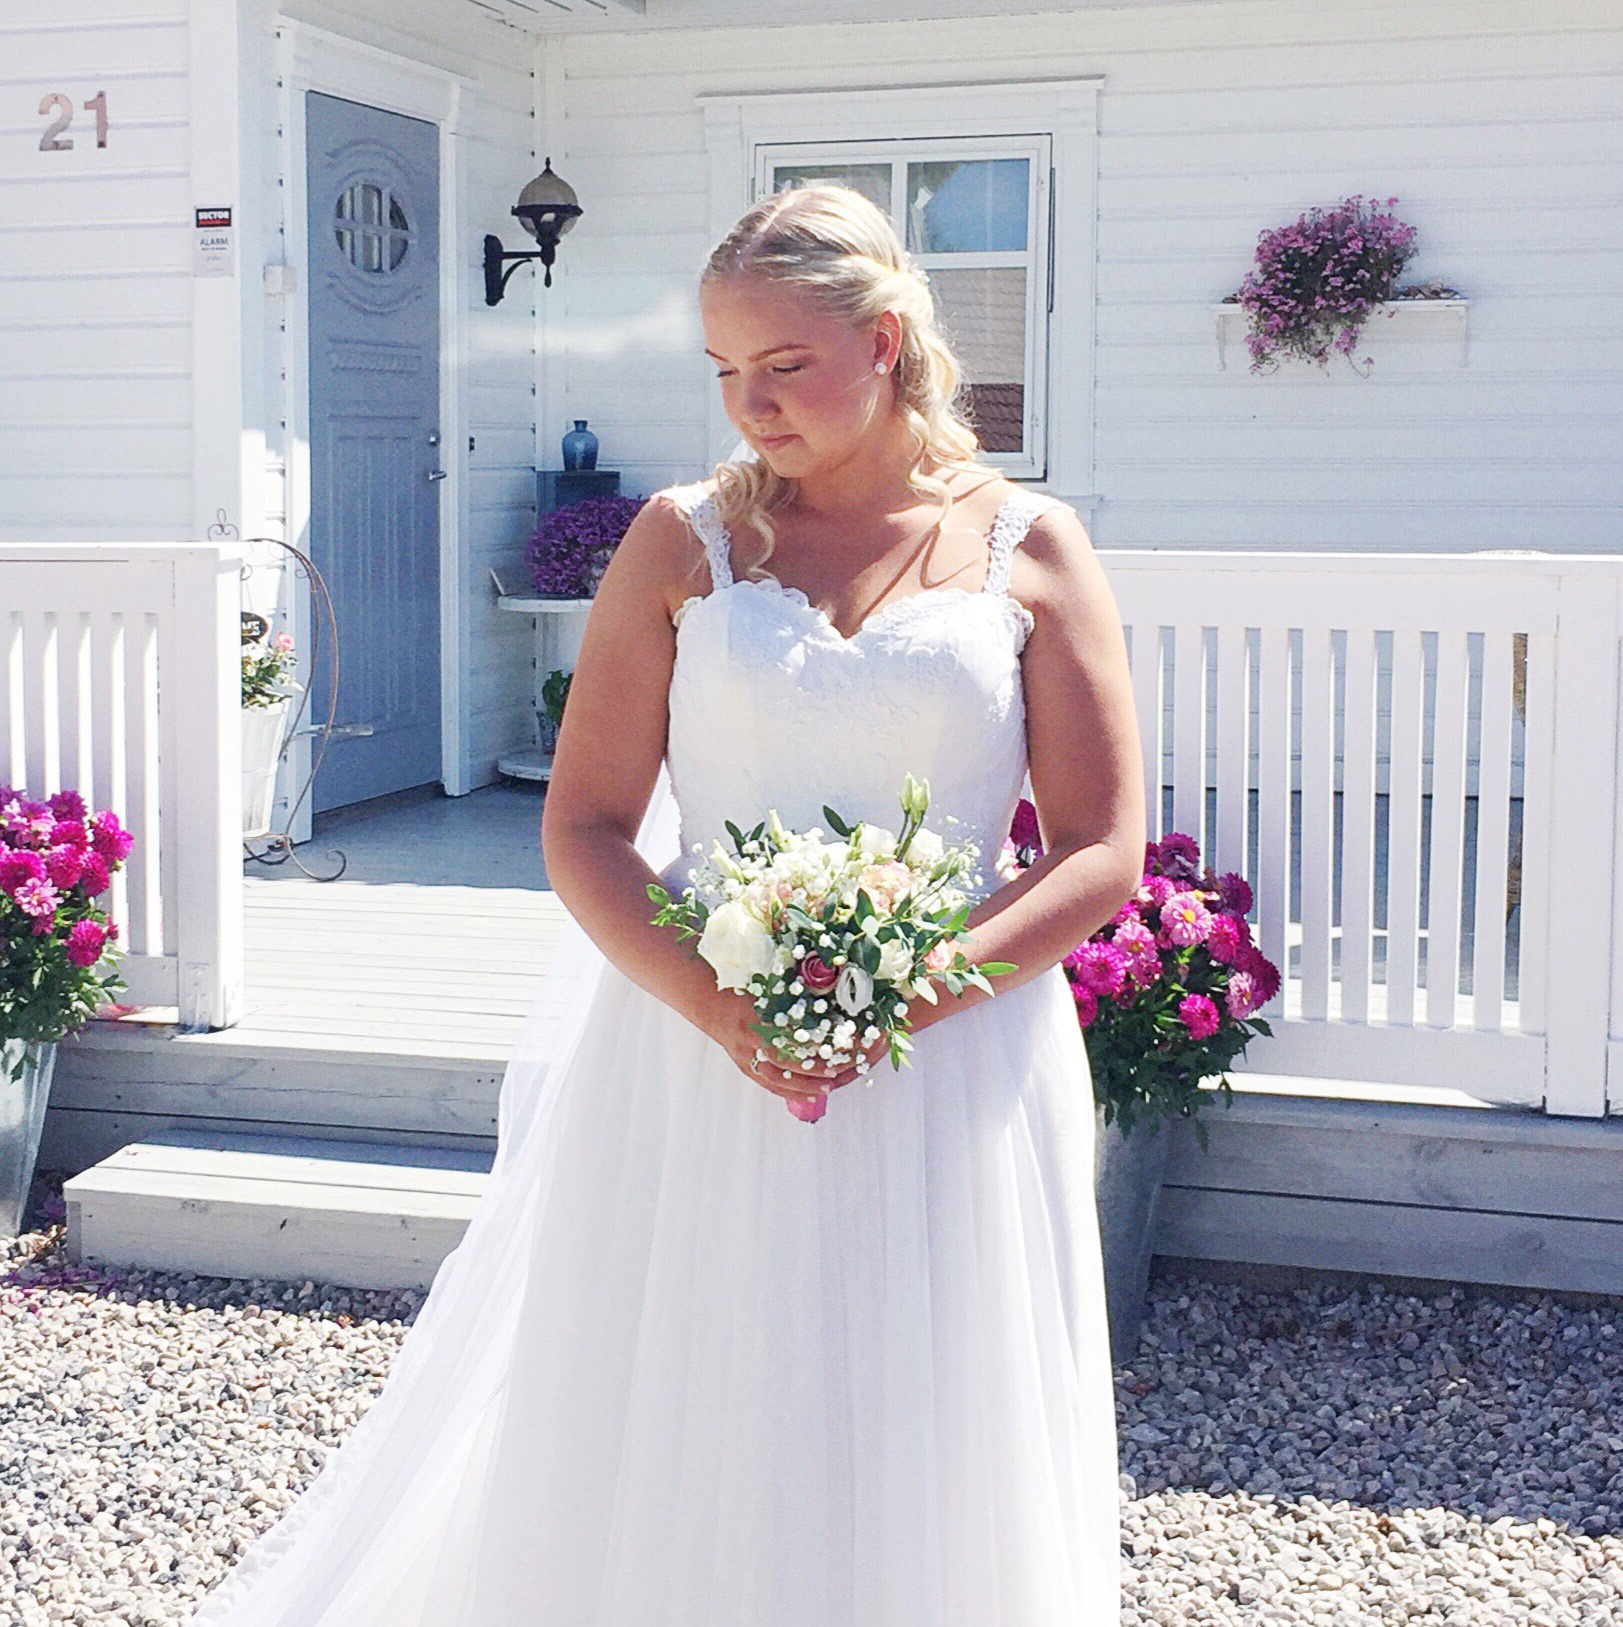 Camillas beautiful diy bridal bouquet and how to make it july 7th 2018 we had this beautiful amazing celebration of love in our family young mrmrs loennecken camilla and edvin had a wonderful wedding izmirmasajfo